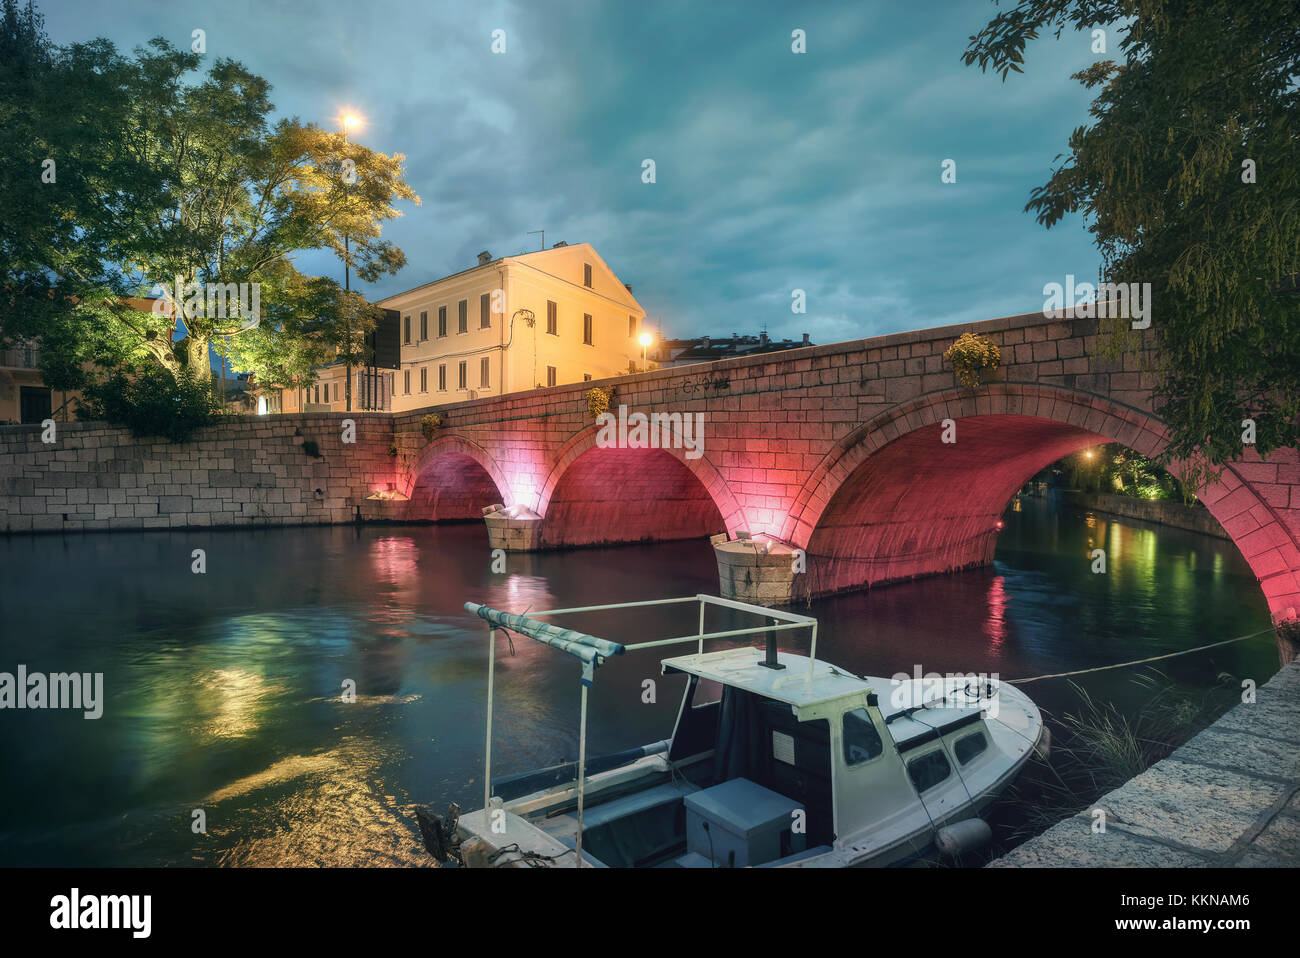 Cityscape with old bridge in city centre at night. Crikvenica, Croatia - Stock Image